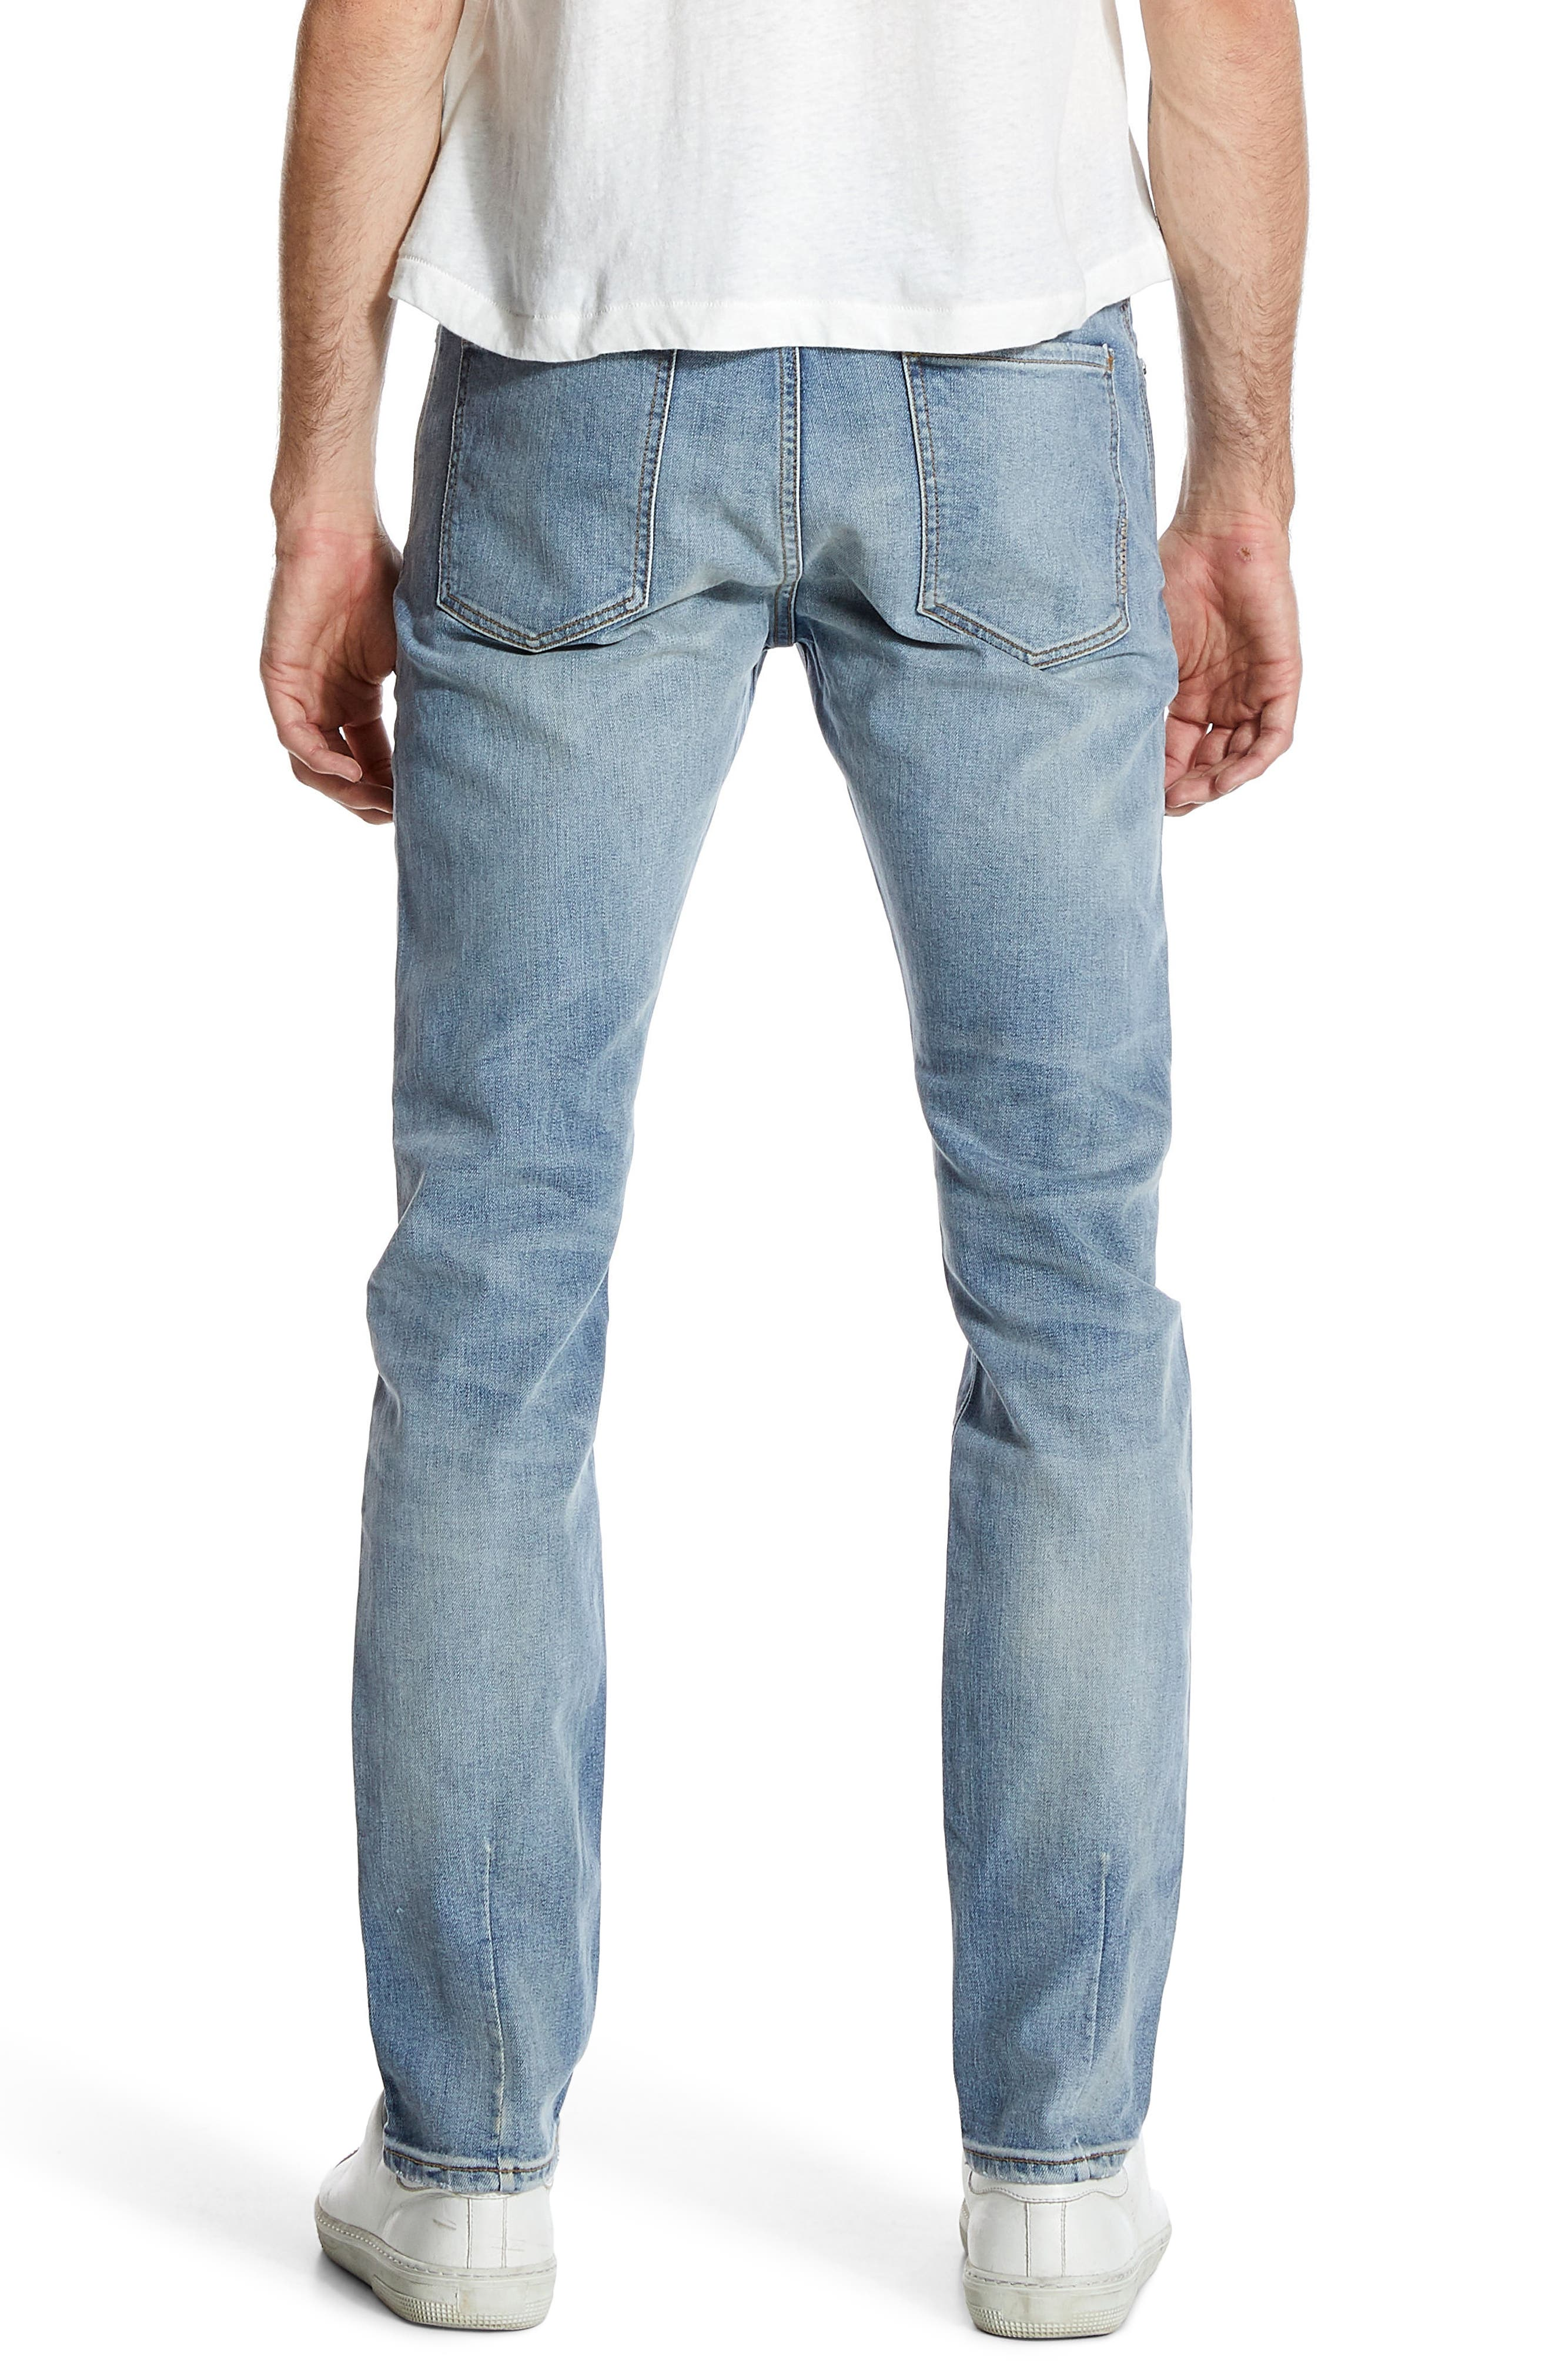 Iggy Skinny Fit Jeans,                             Alternate thumbnail 2, color,                             ATOMIC AIRWASH